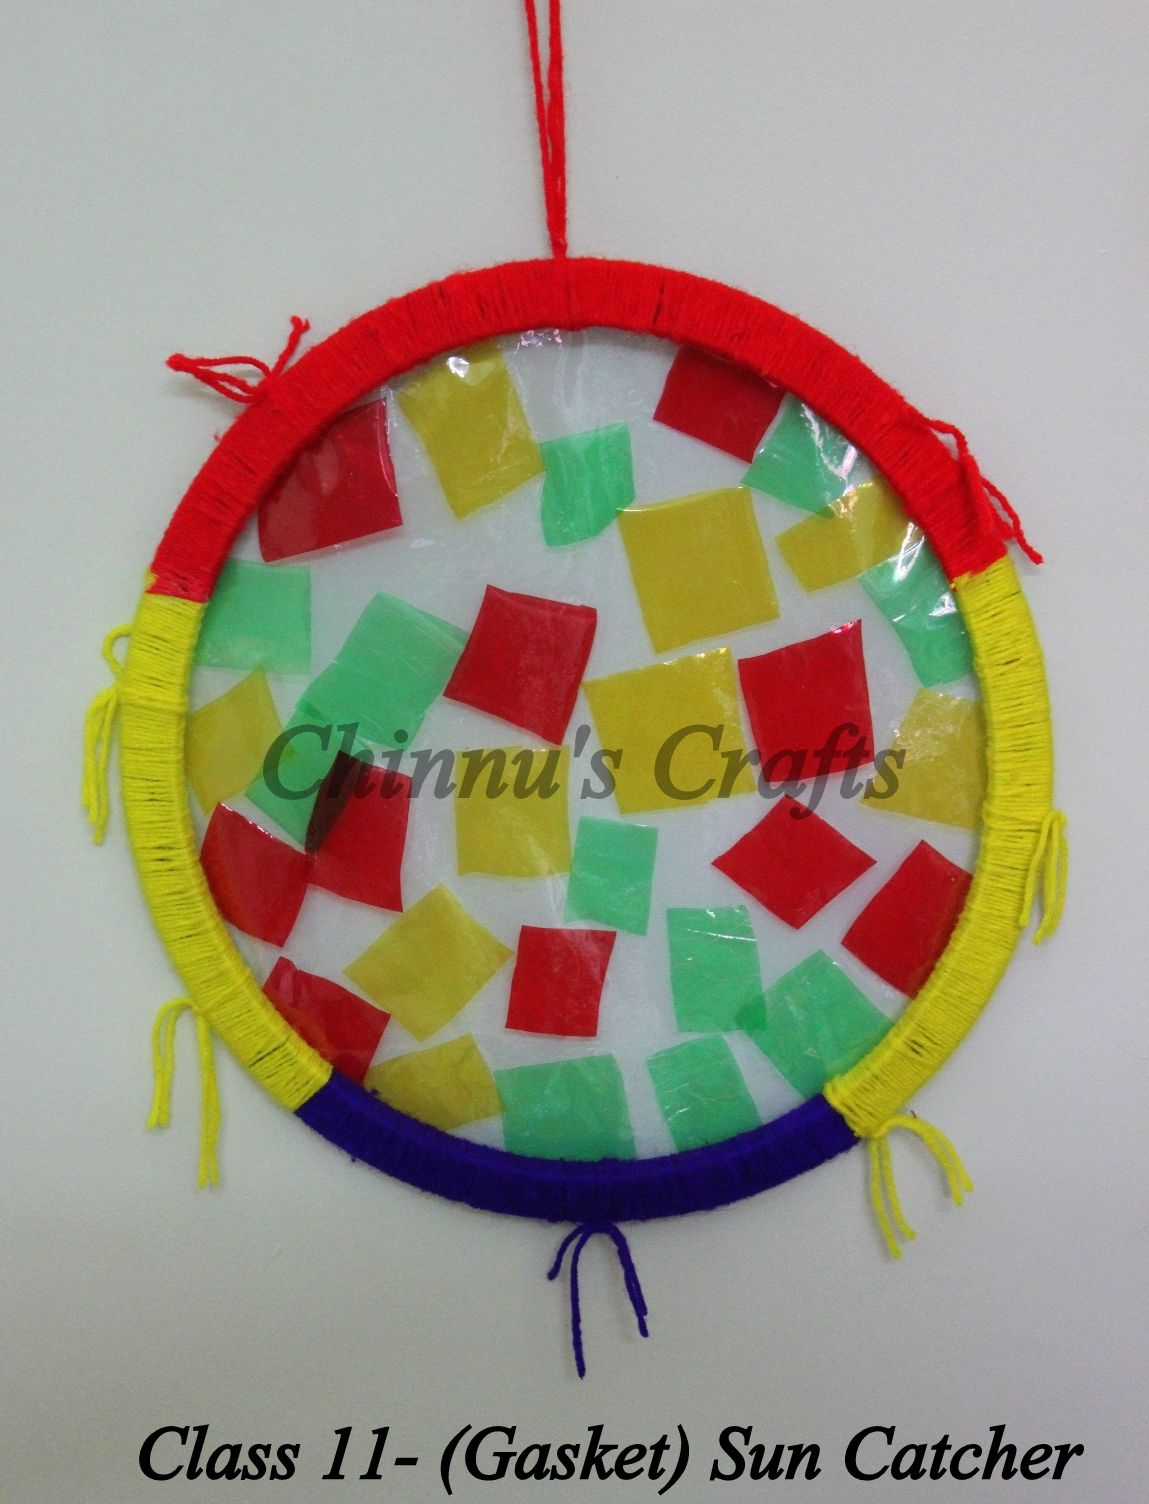 Sun Catcher - Recycled Project made from Pressure Cooker